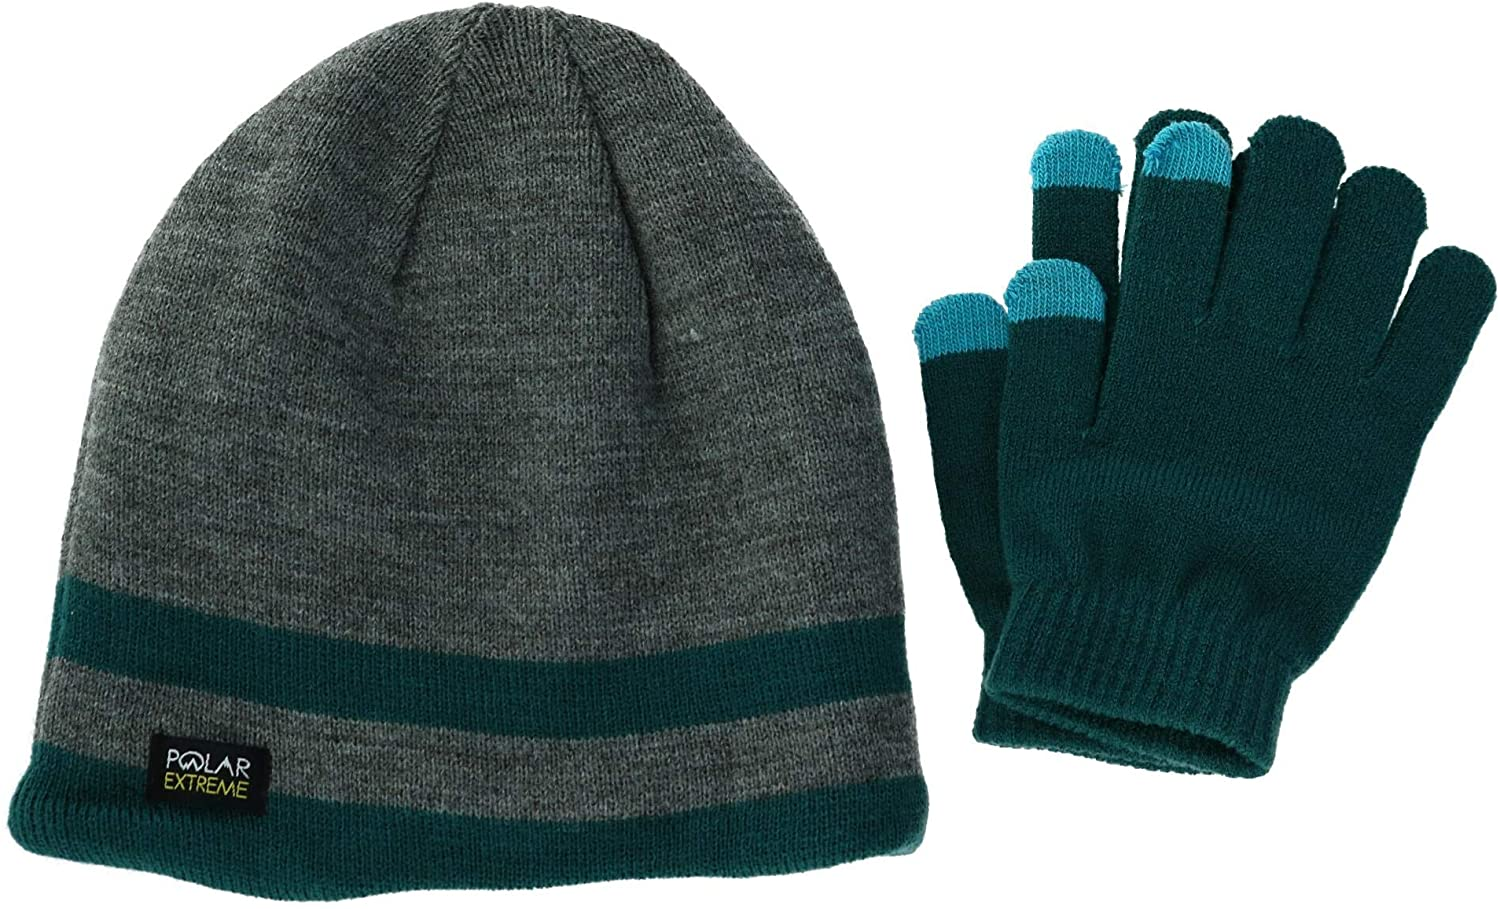 Polar Extreme Kids' Striped Beanie with Texting Glove Set